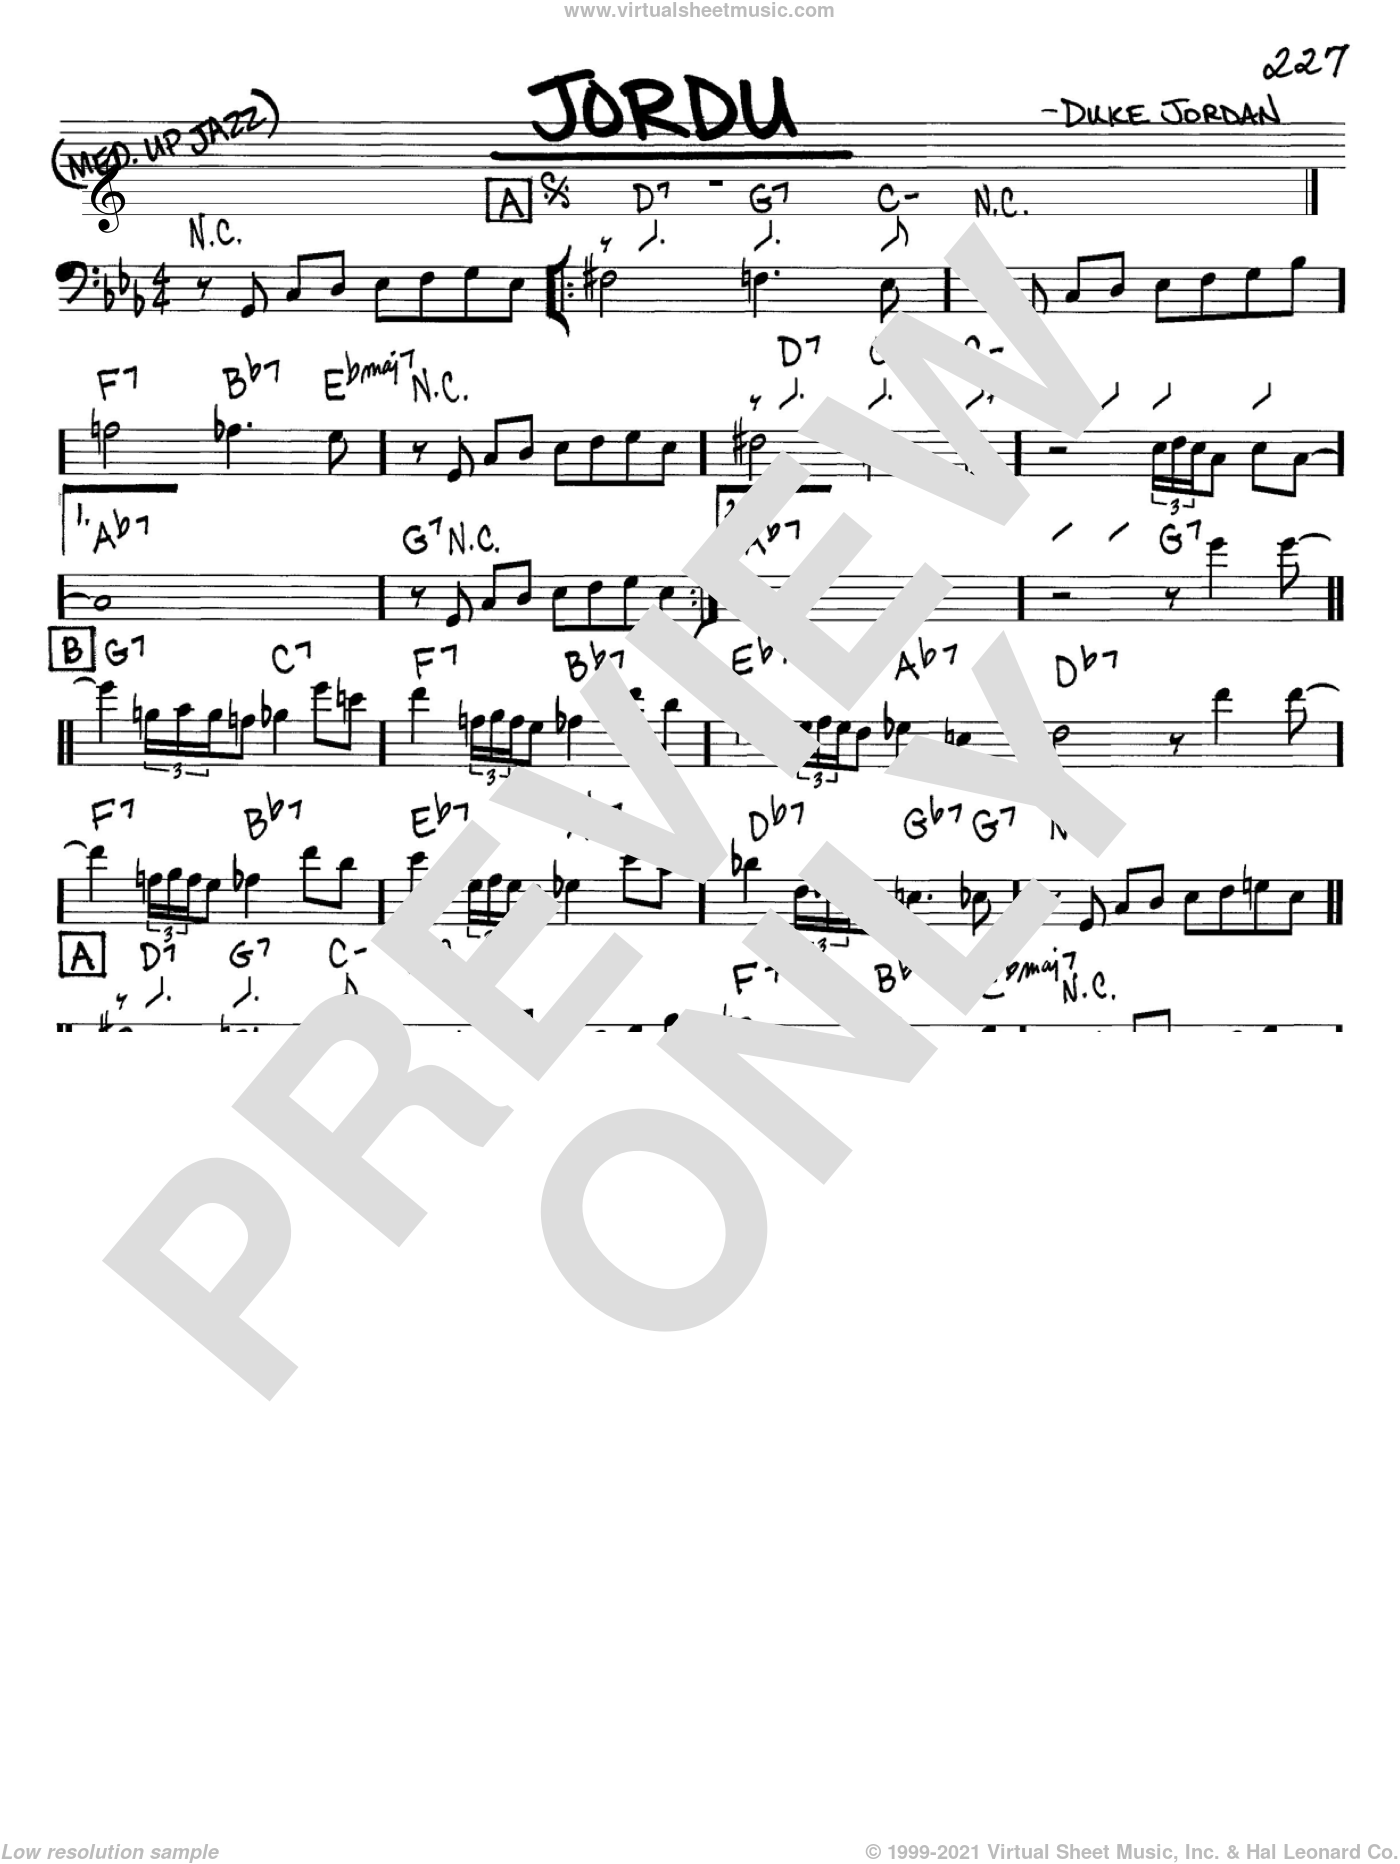 Jordu sheet music for voice and other instruments (bass clef) by Duke Jordan, intermediate